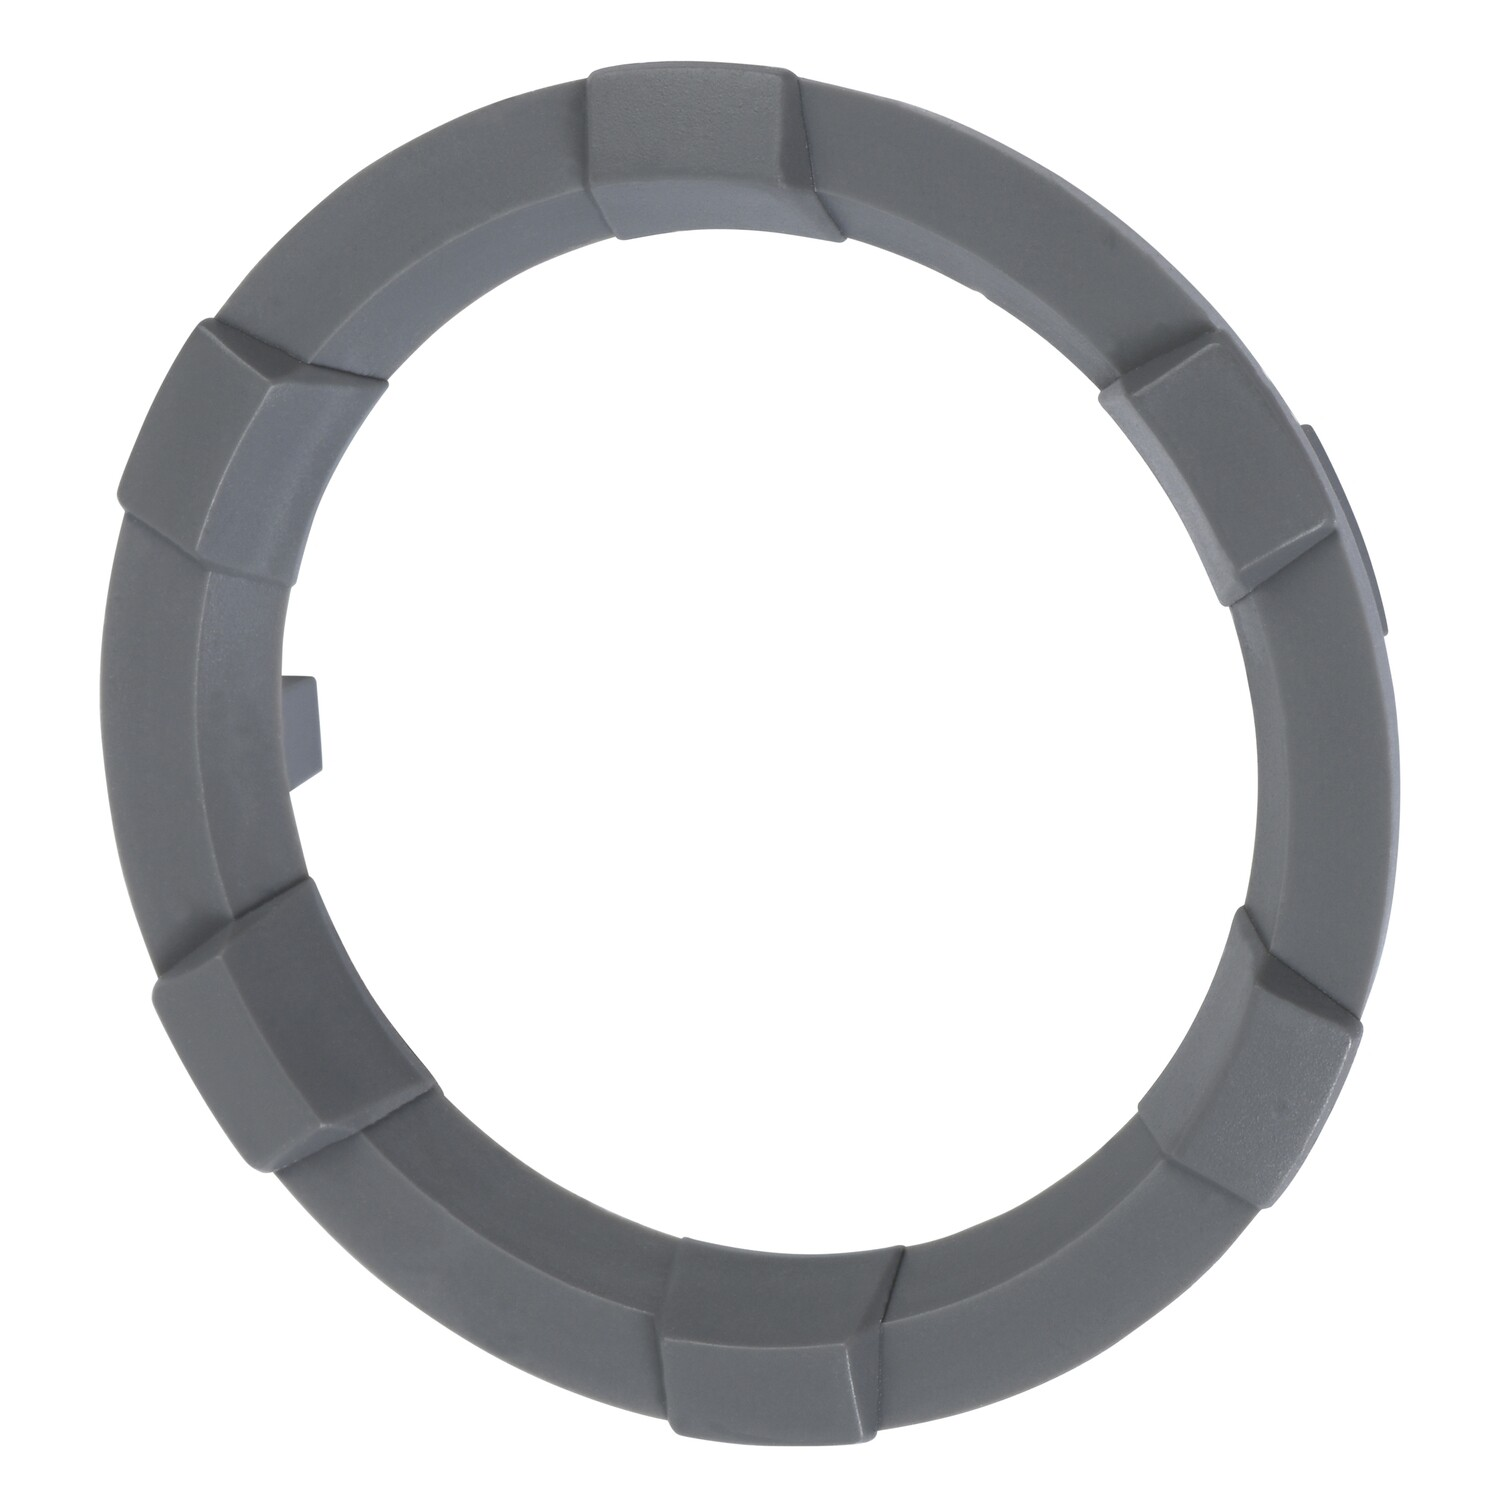 Start Button Ring (2016+ Tacoma / 2020+ Tundra) - CEMENT